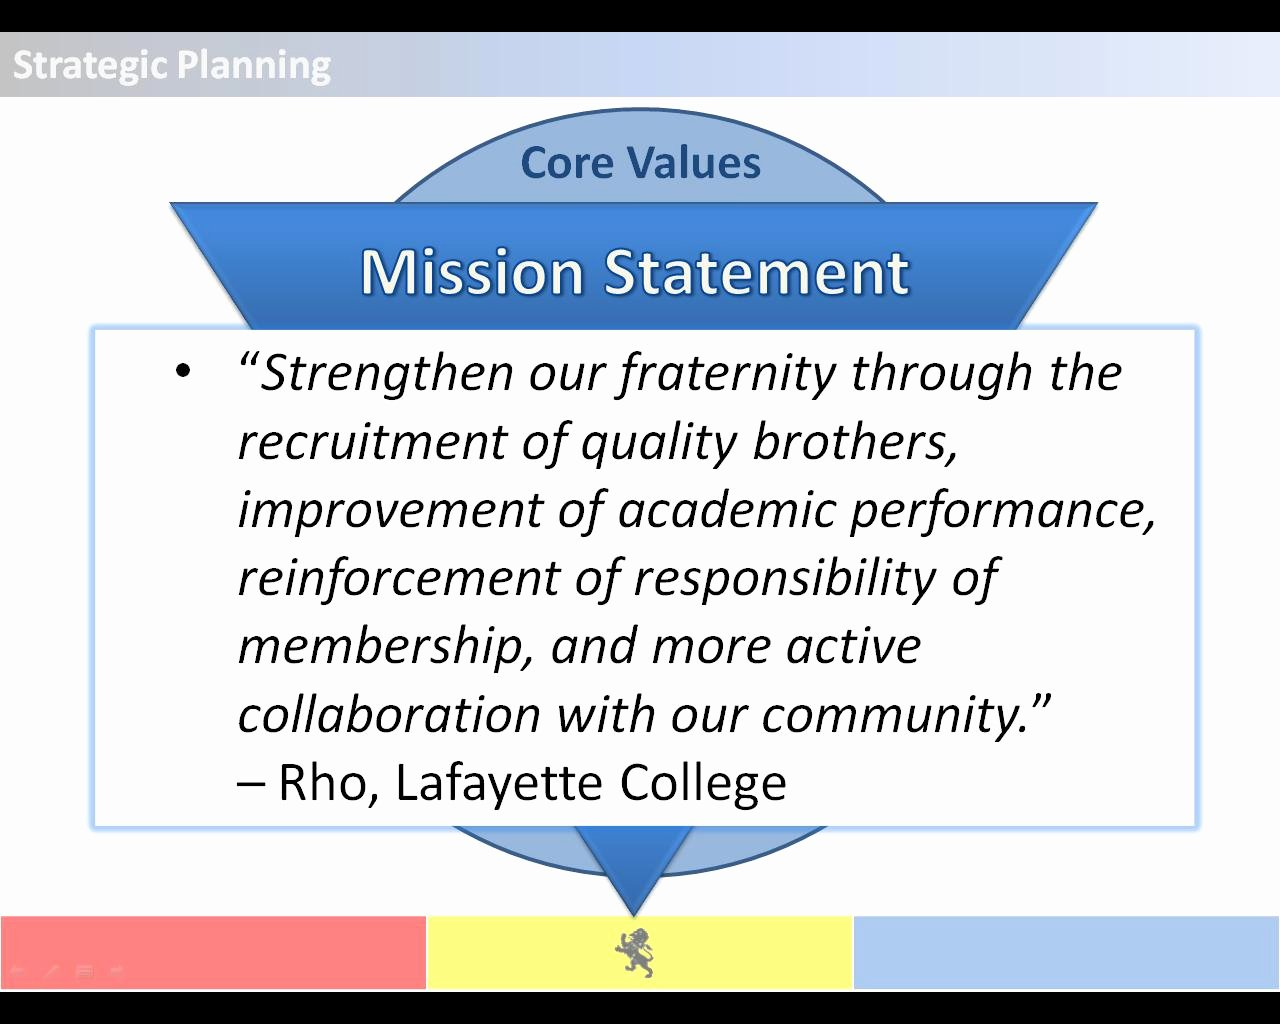 Student Mission Statement Examples Awesome Leadership Quotes for College Students Quotesgram